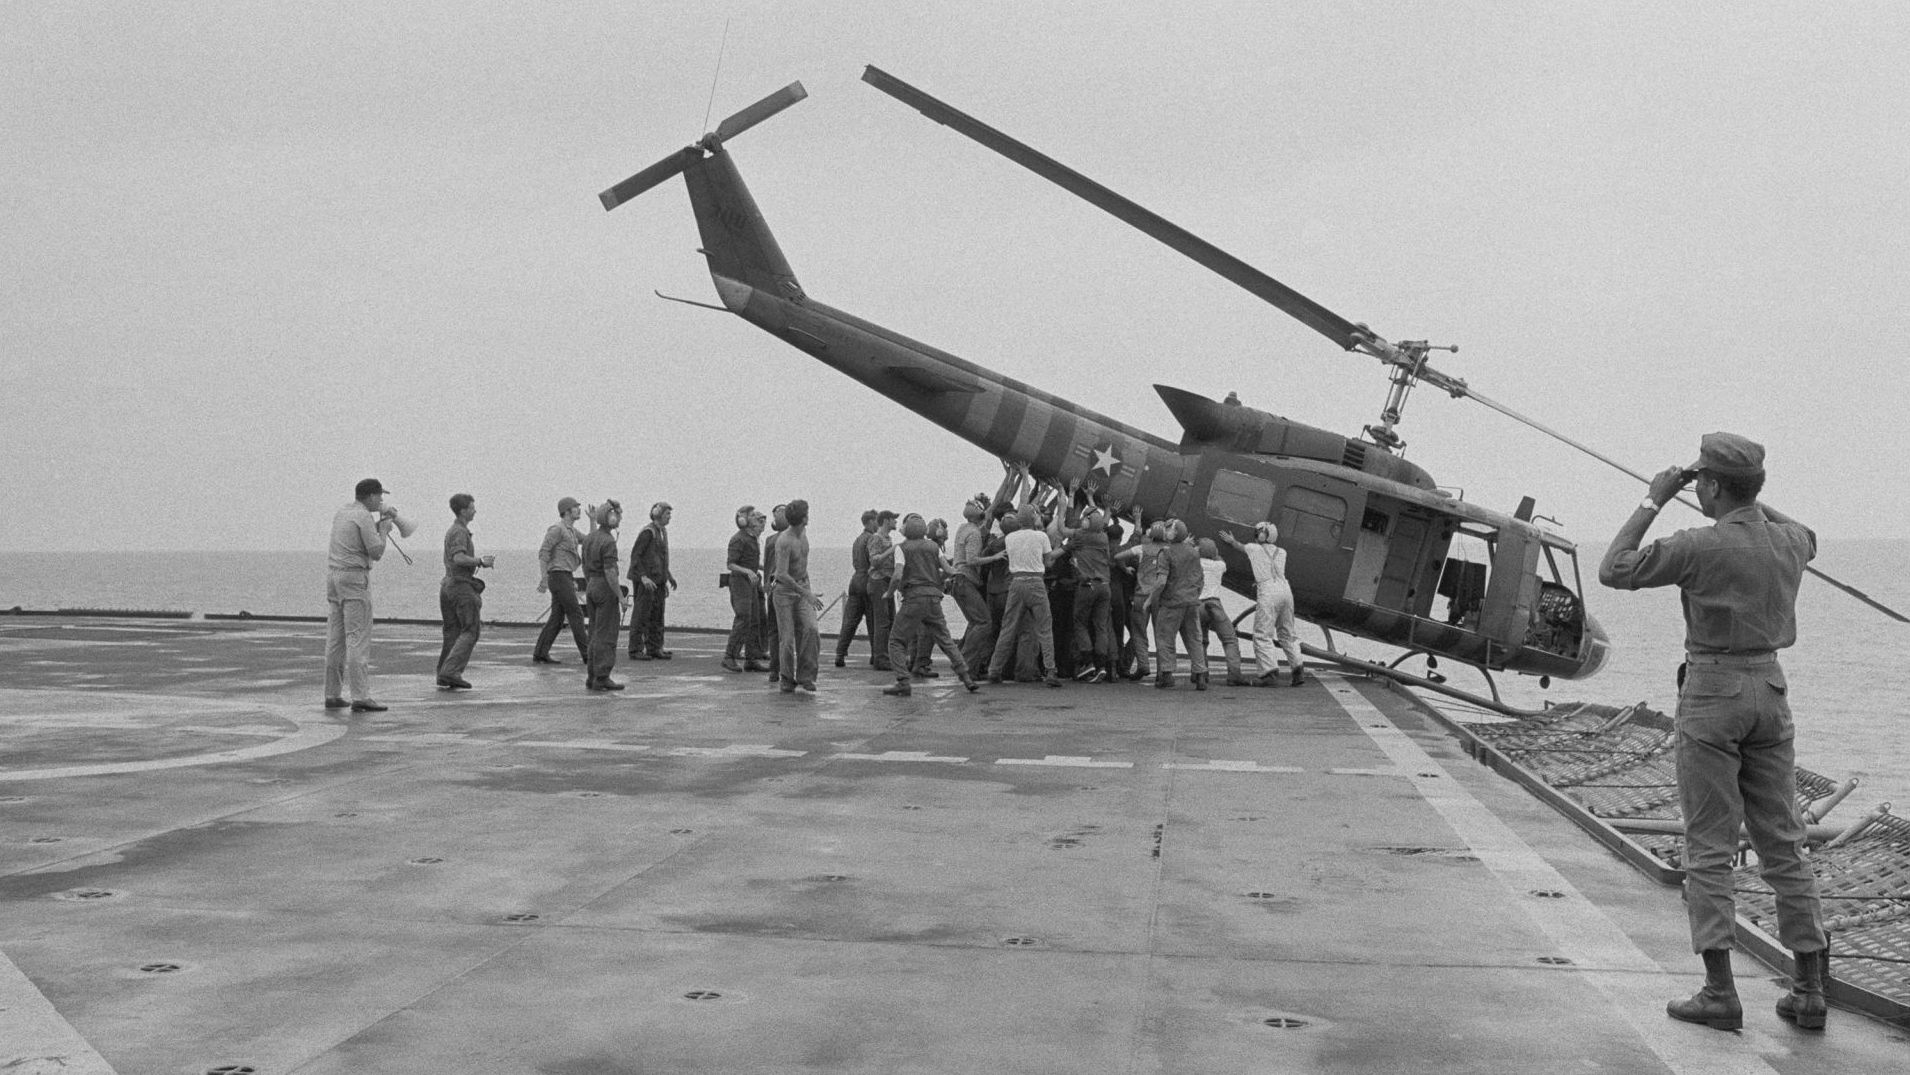 saigon vietnam 1975 helicopter story with Vietnam War Pbs Qa Filmmakers Ken Burns Lynn Novick on 6631430068484 further Operation Hawthorne In Vietnam 1966 1 besides 338966309439628669 together with Vietnam War Photos Still Powerful Nearly 50 Years Later F8C11404994 besides The Vietnam War As Seen On Newsweek Magazine Covers 1965 1973.